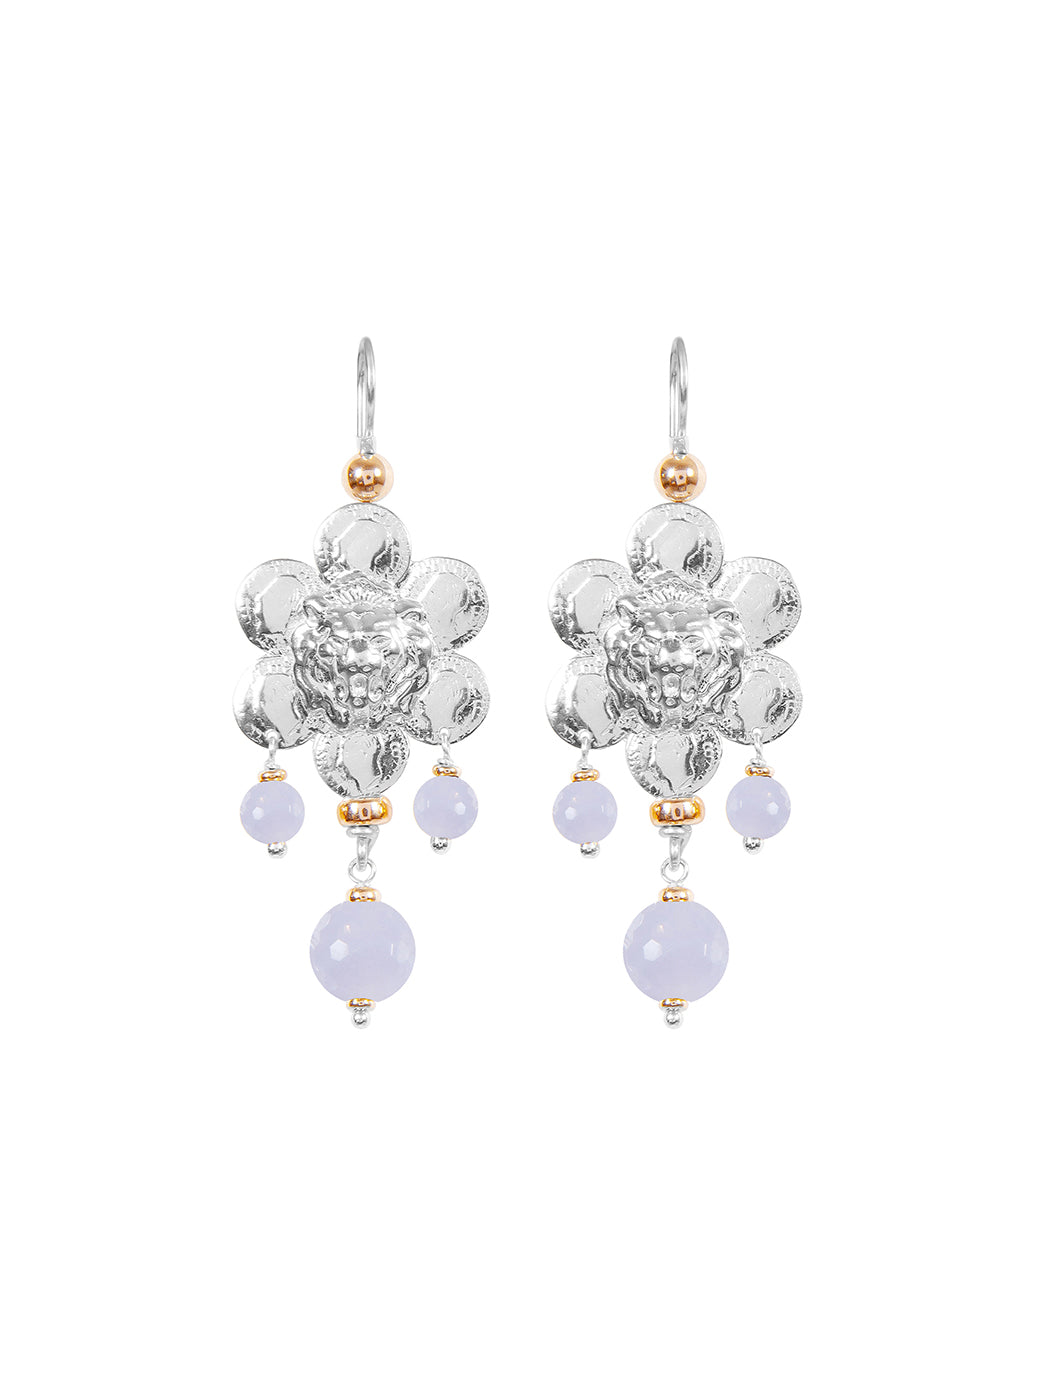 Fiorina Jewellery Giardini Earrings Chalcedony